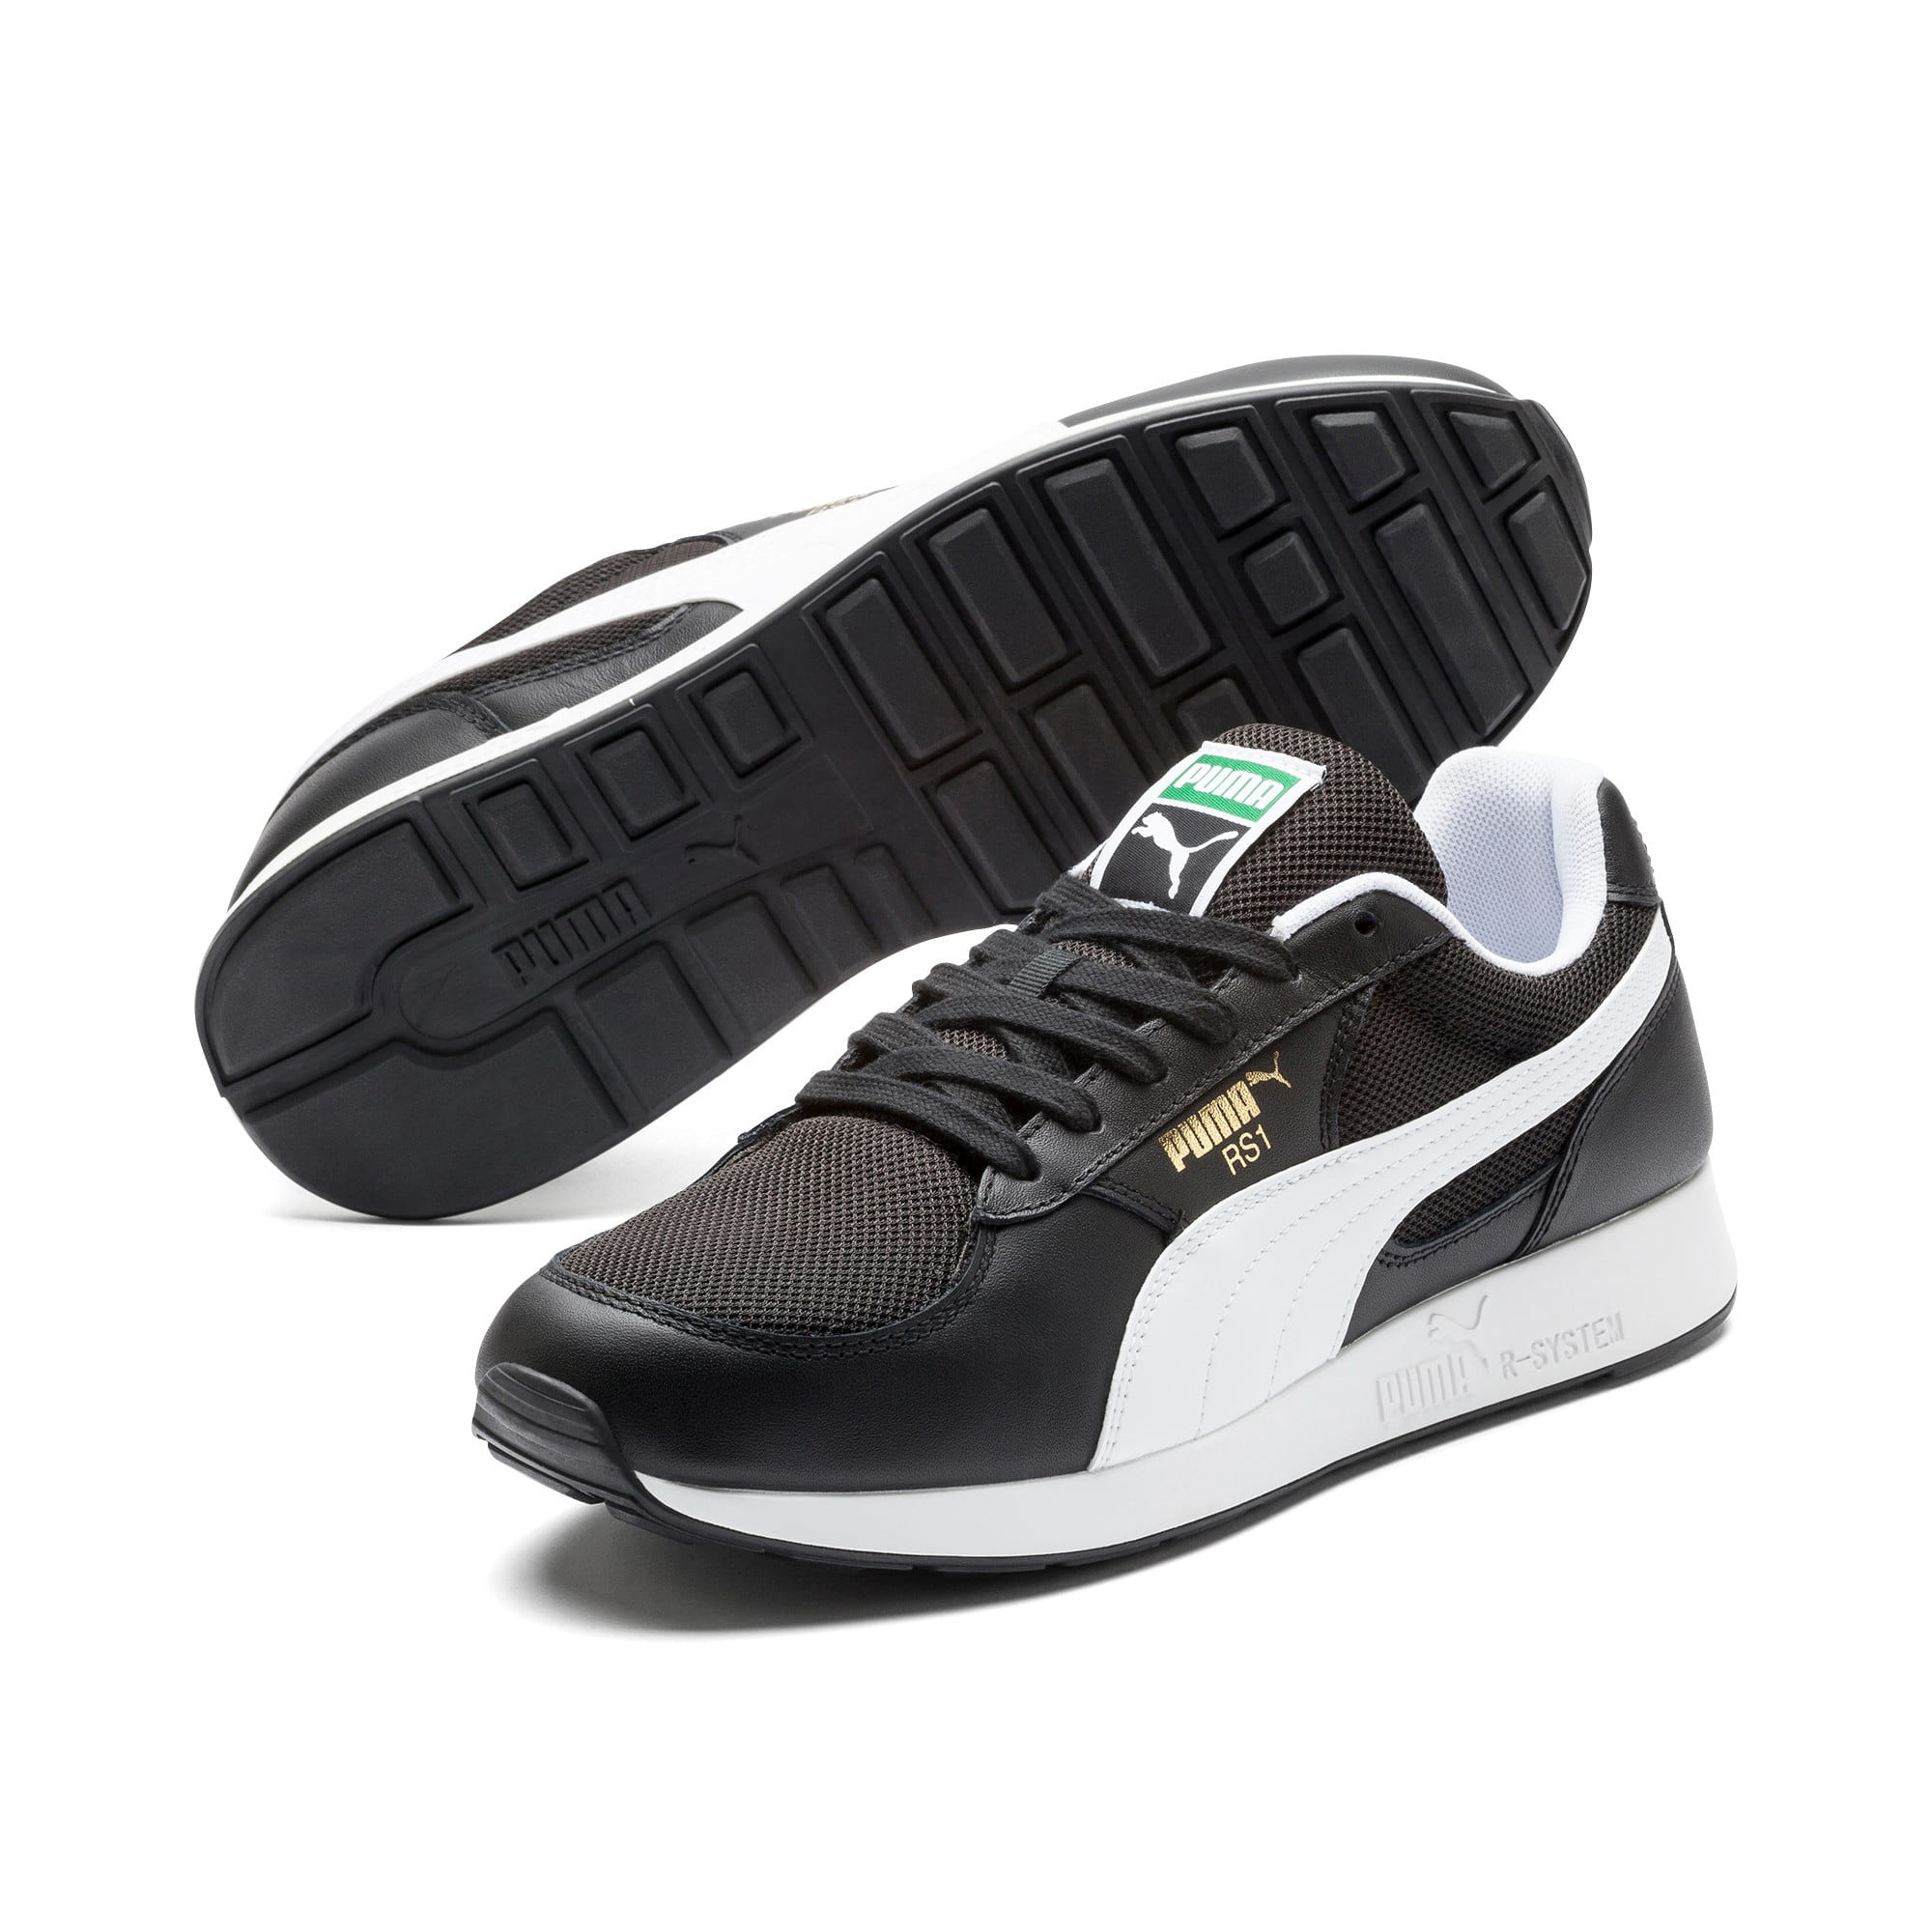 Thumbnail 2 of RS-1 OG Trainers, Puma Black-CASTLEROCK, medium